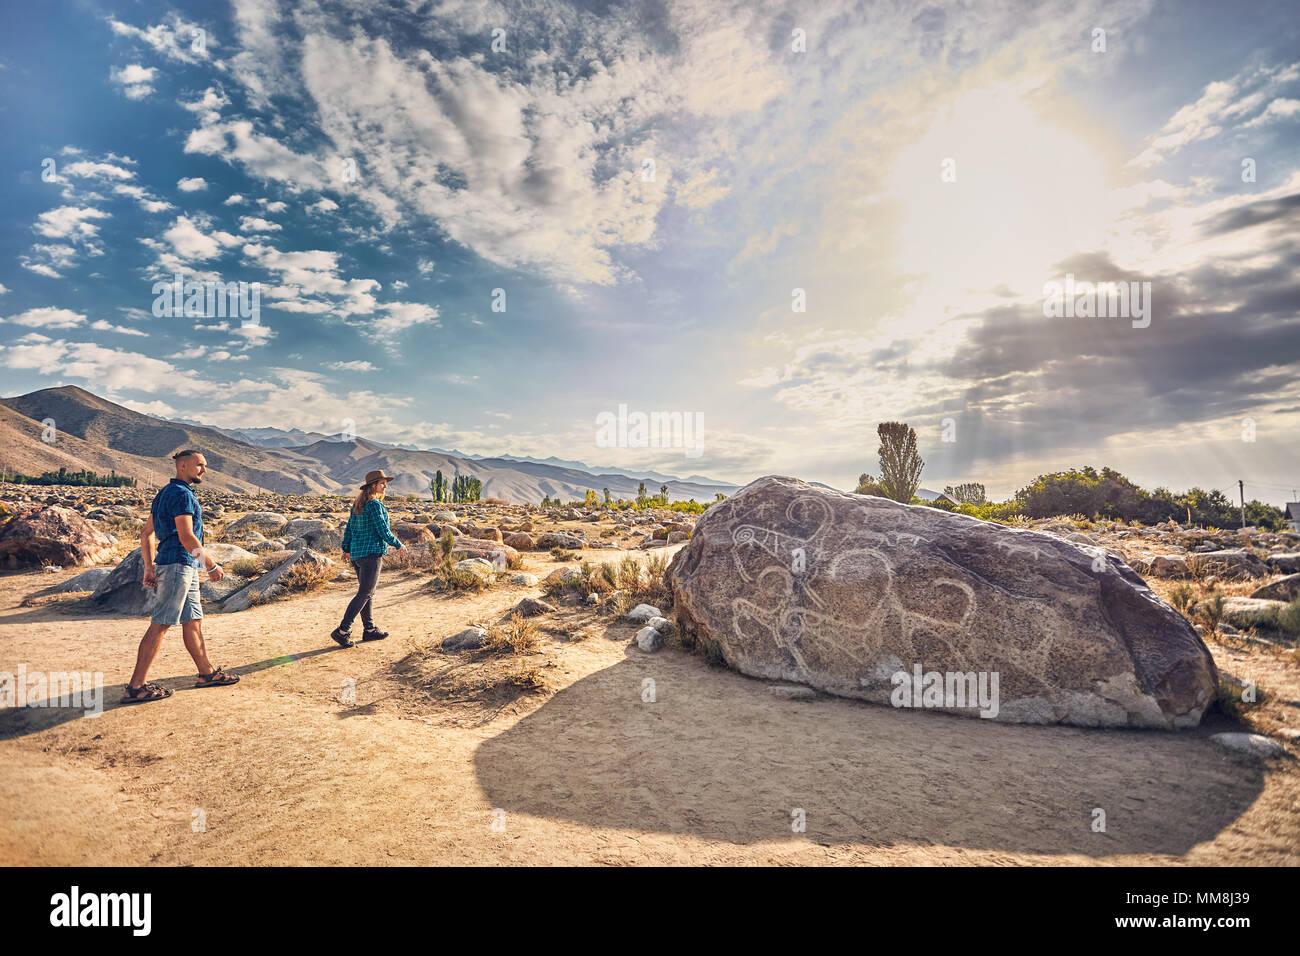 Couple in checkered shirt walking in the open air museum near stone with ancient petroglyph of goats at Kyrgyzstan - Stock Image